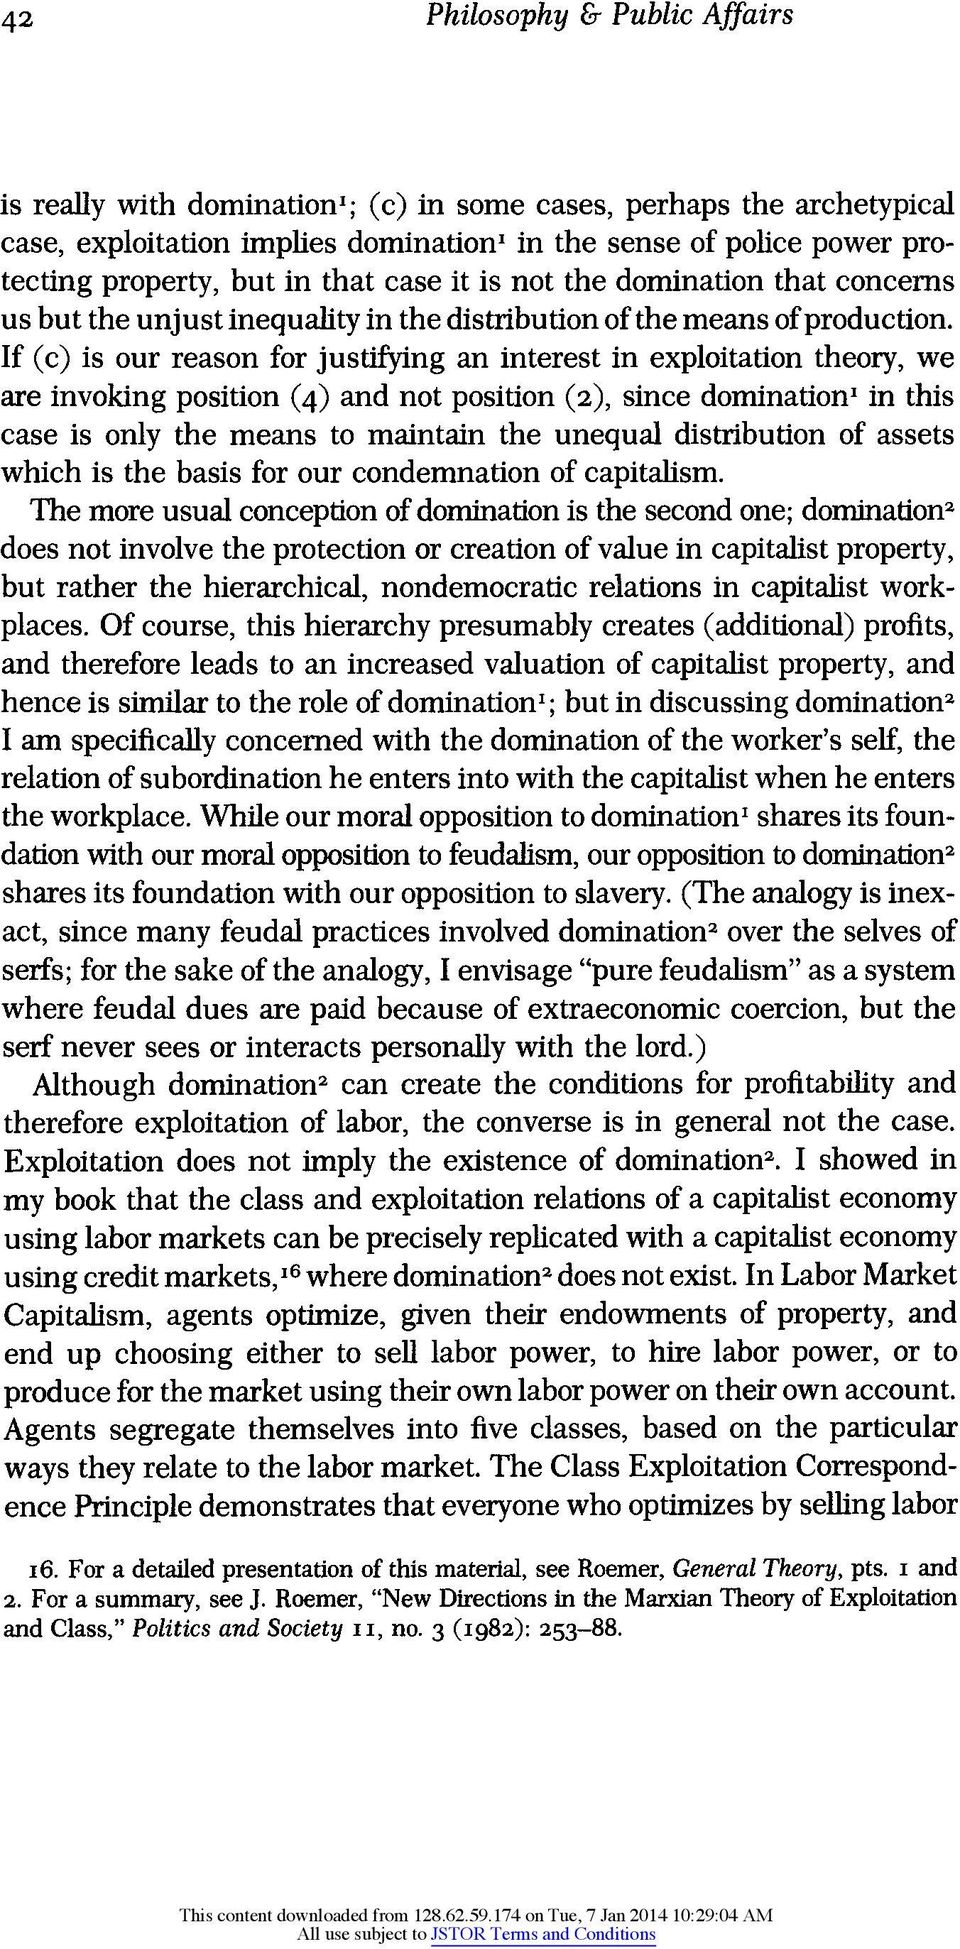 If (c) is our reason for justifying an interest in exploitation theory, we are invoking position (4) and not position (2), since domination' in this case is only the means to maintain the unequal